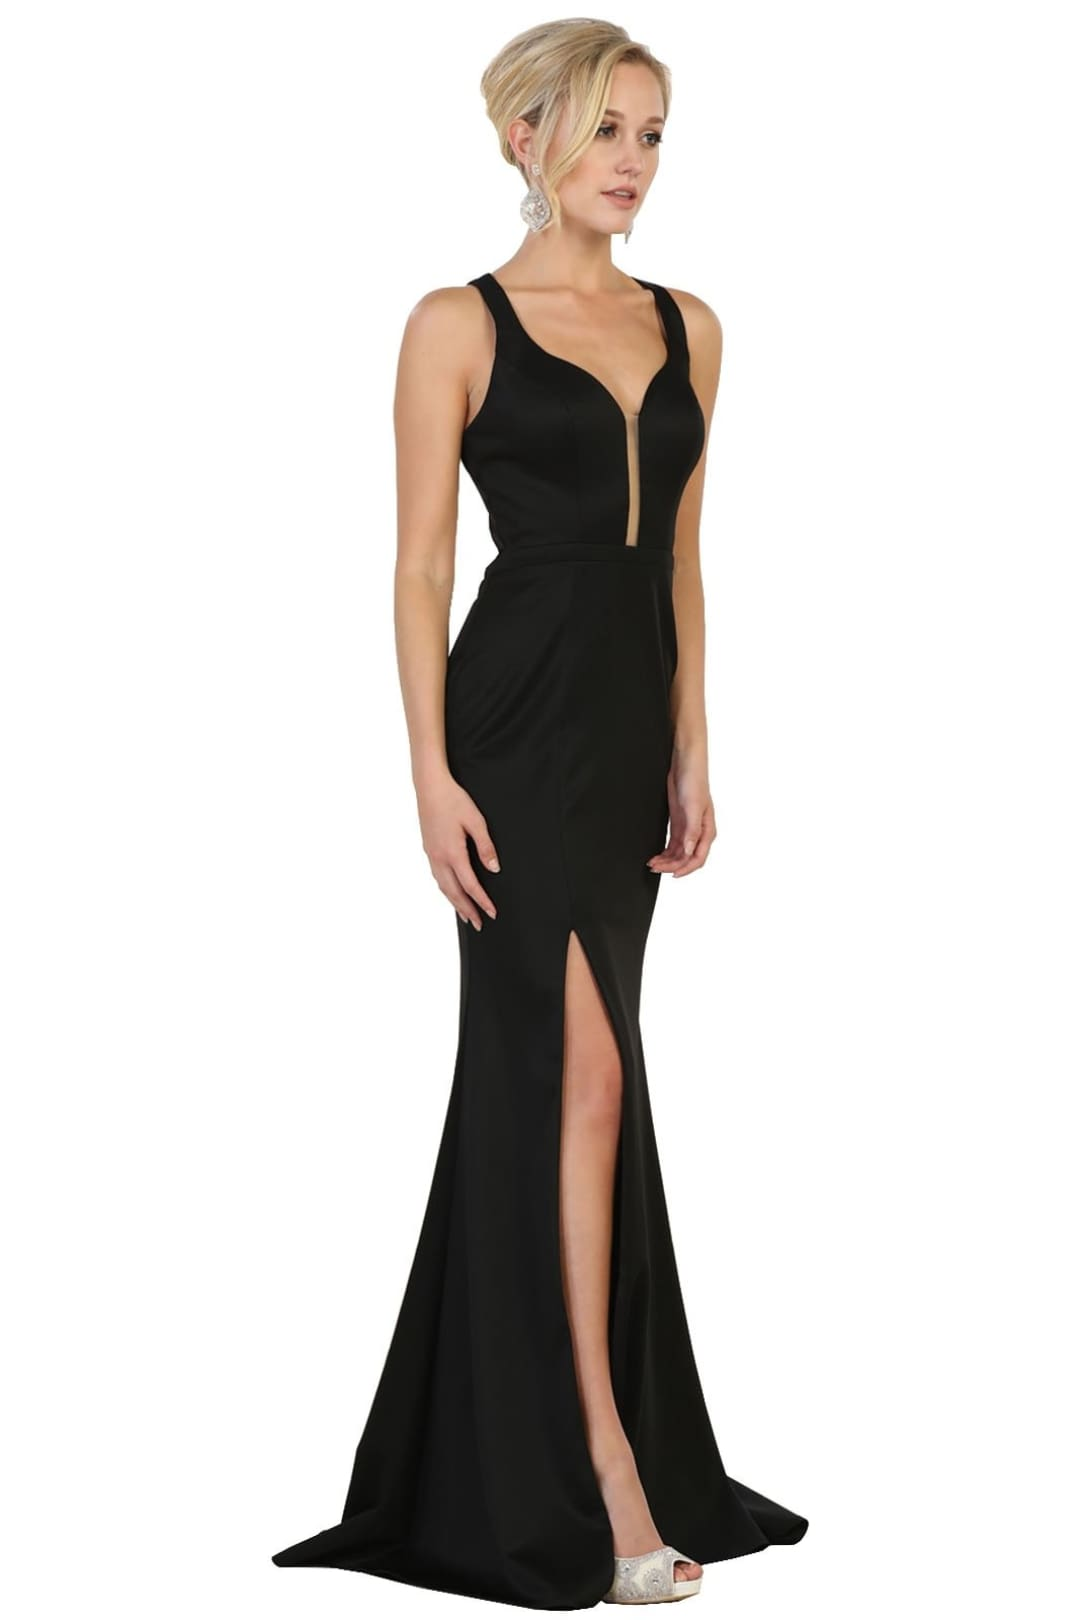 New Glamorous Evening Gown - Black / 4